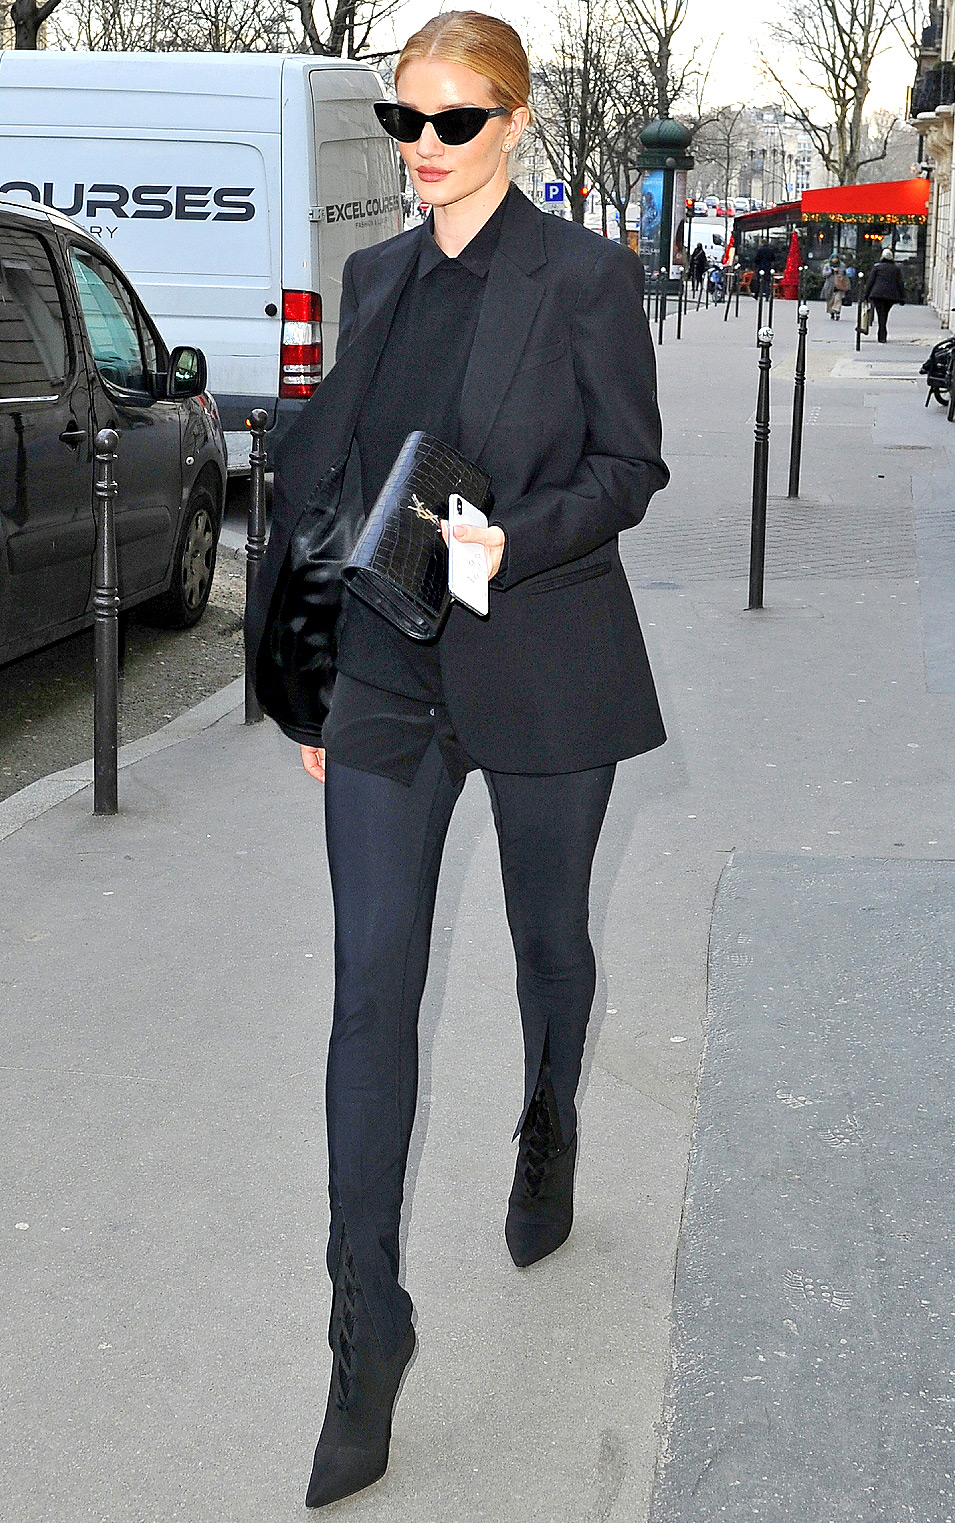 Rosie Huntington Whiteley spotted out and about